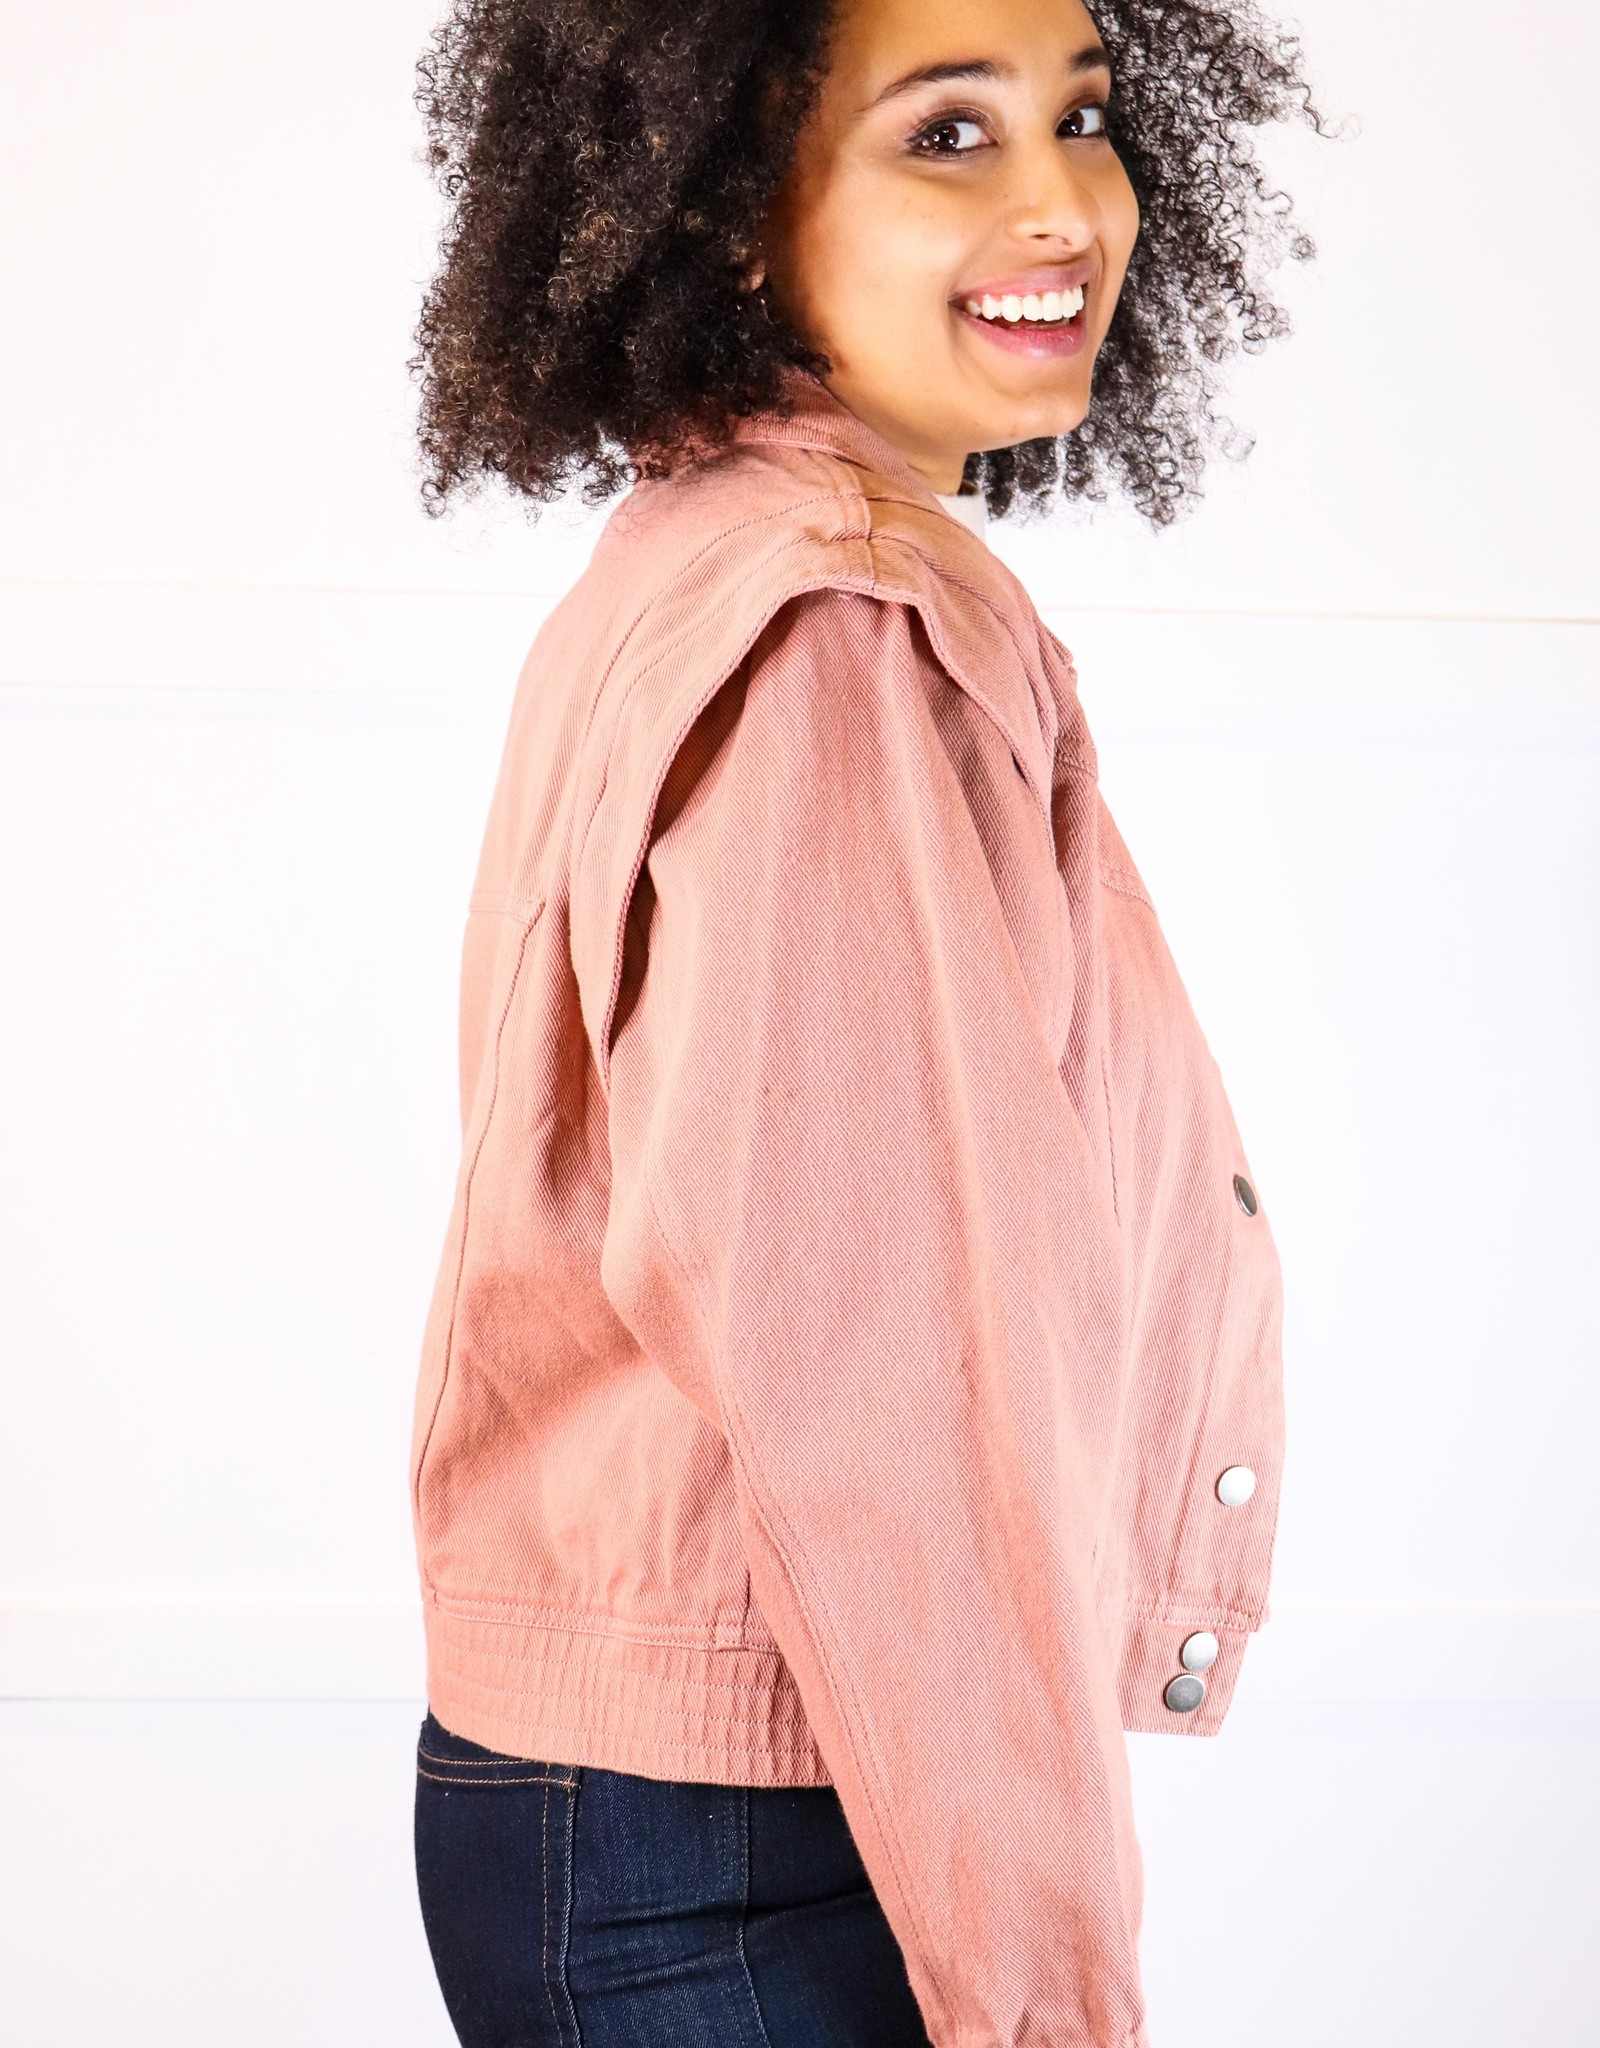 HUSH Coloured denim detailed shoulder jacket